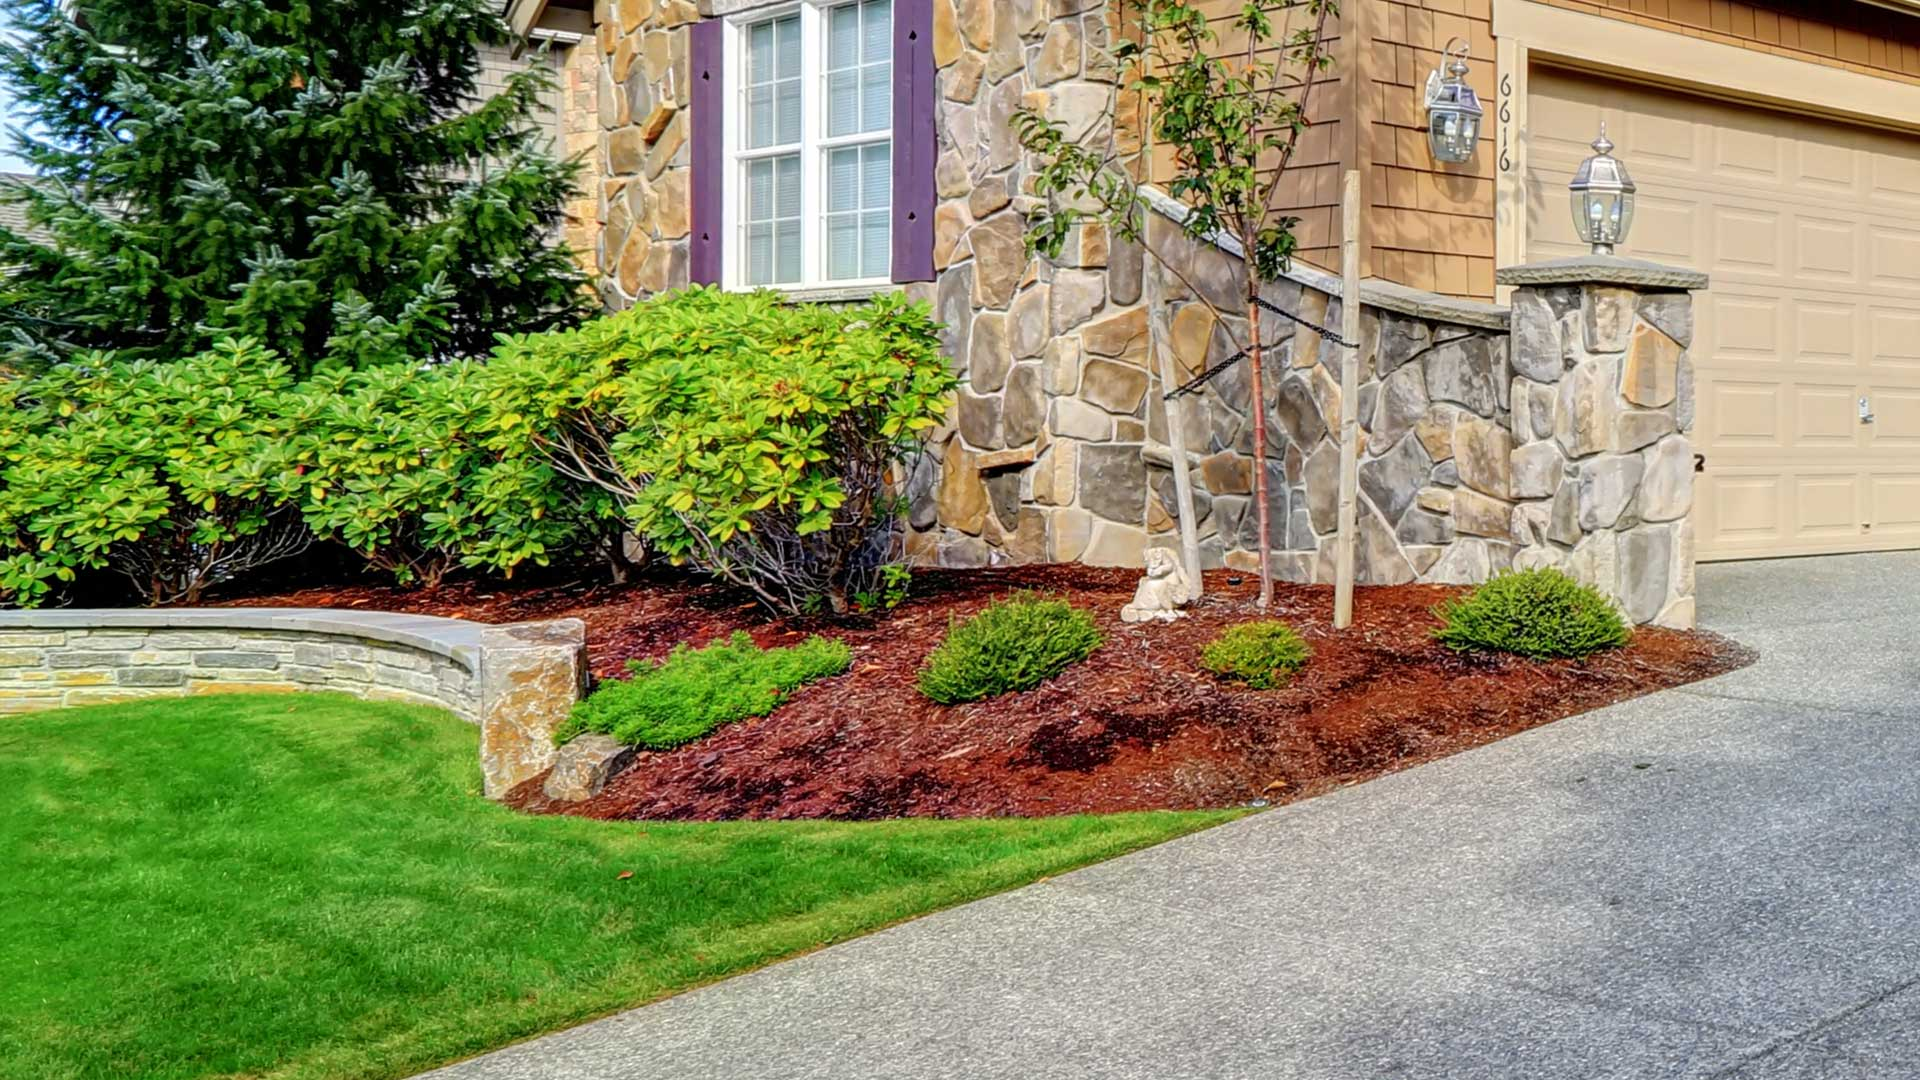 Areas that we service for lawn care and landscaping services in the New Paltz, NY.